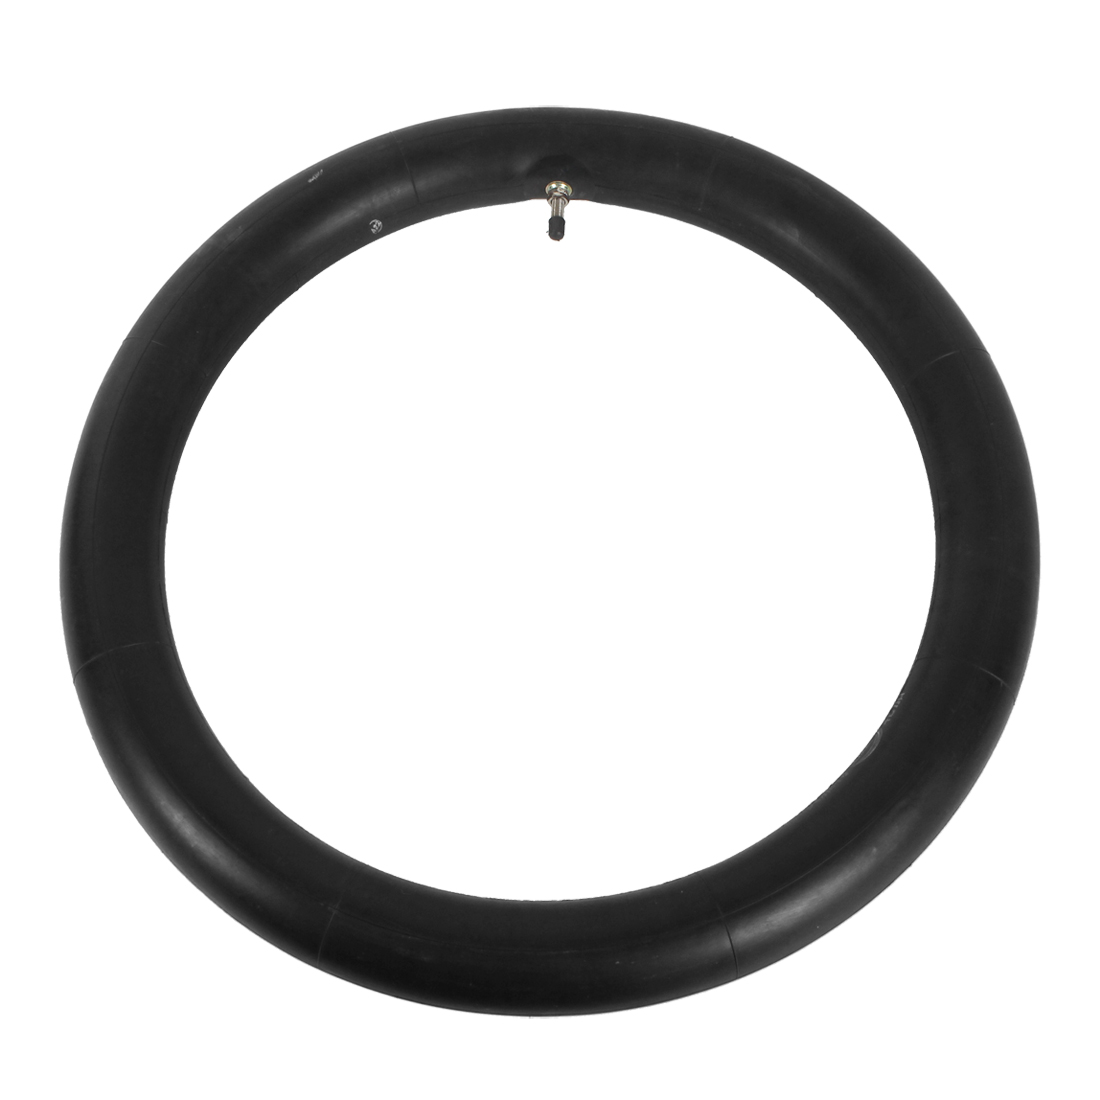 Motorcycle Motorbike Rubber Inner Tire Tubing Tube Black 275-17